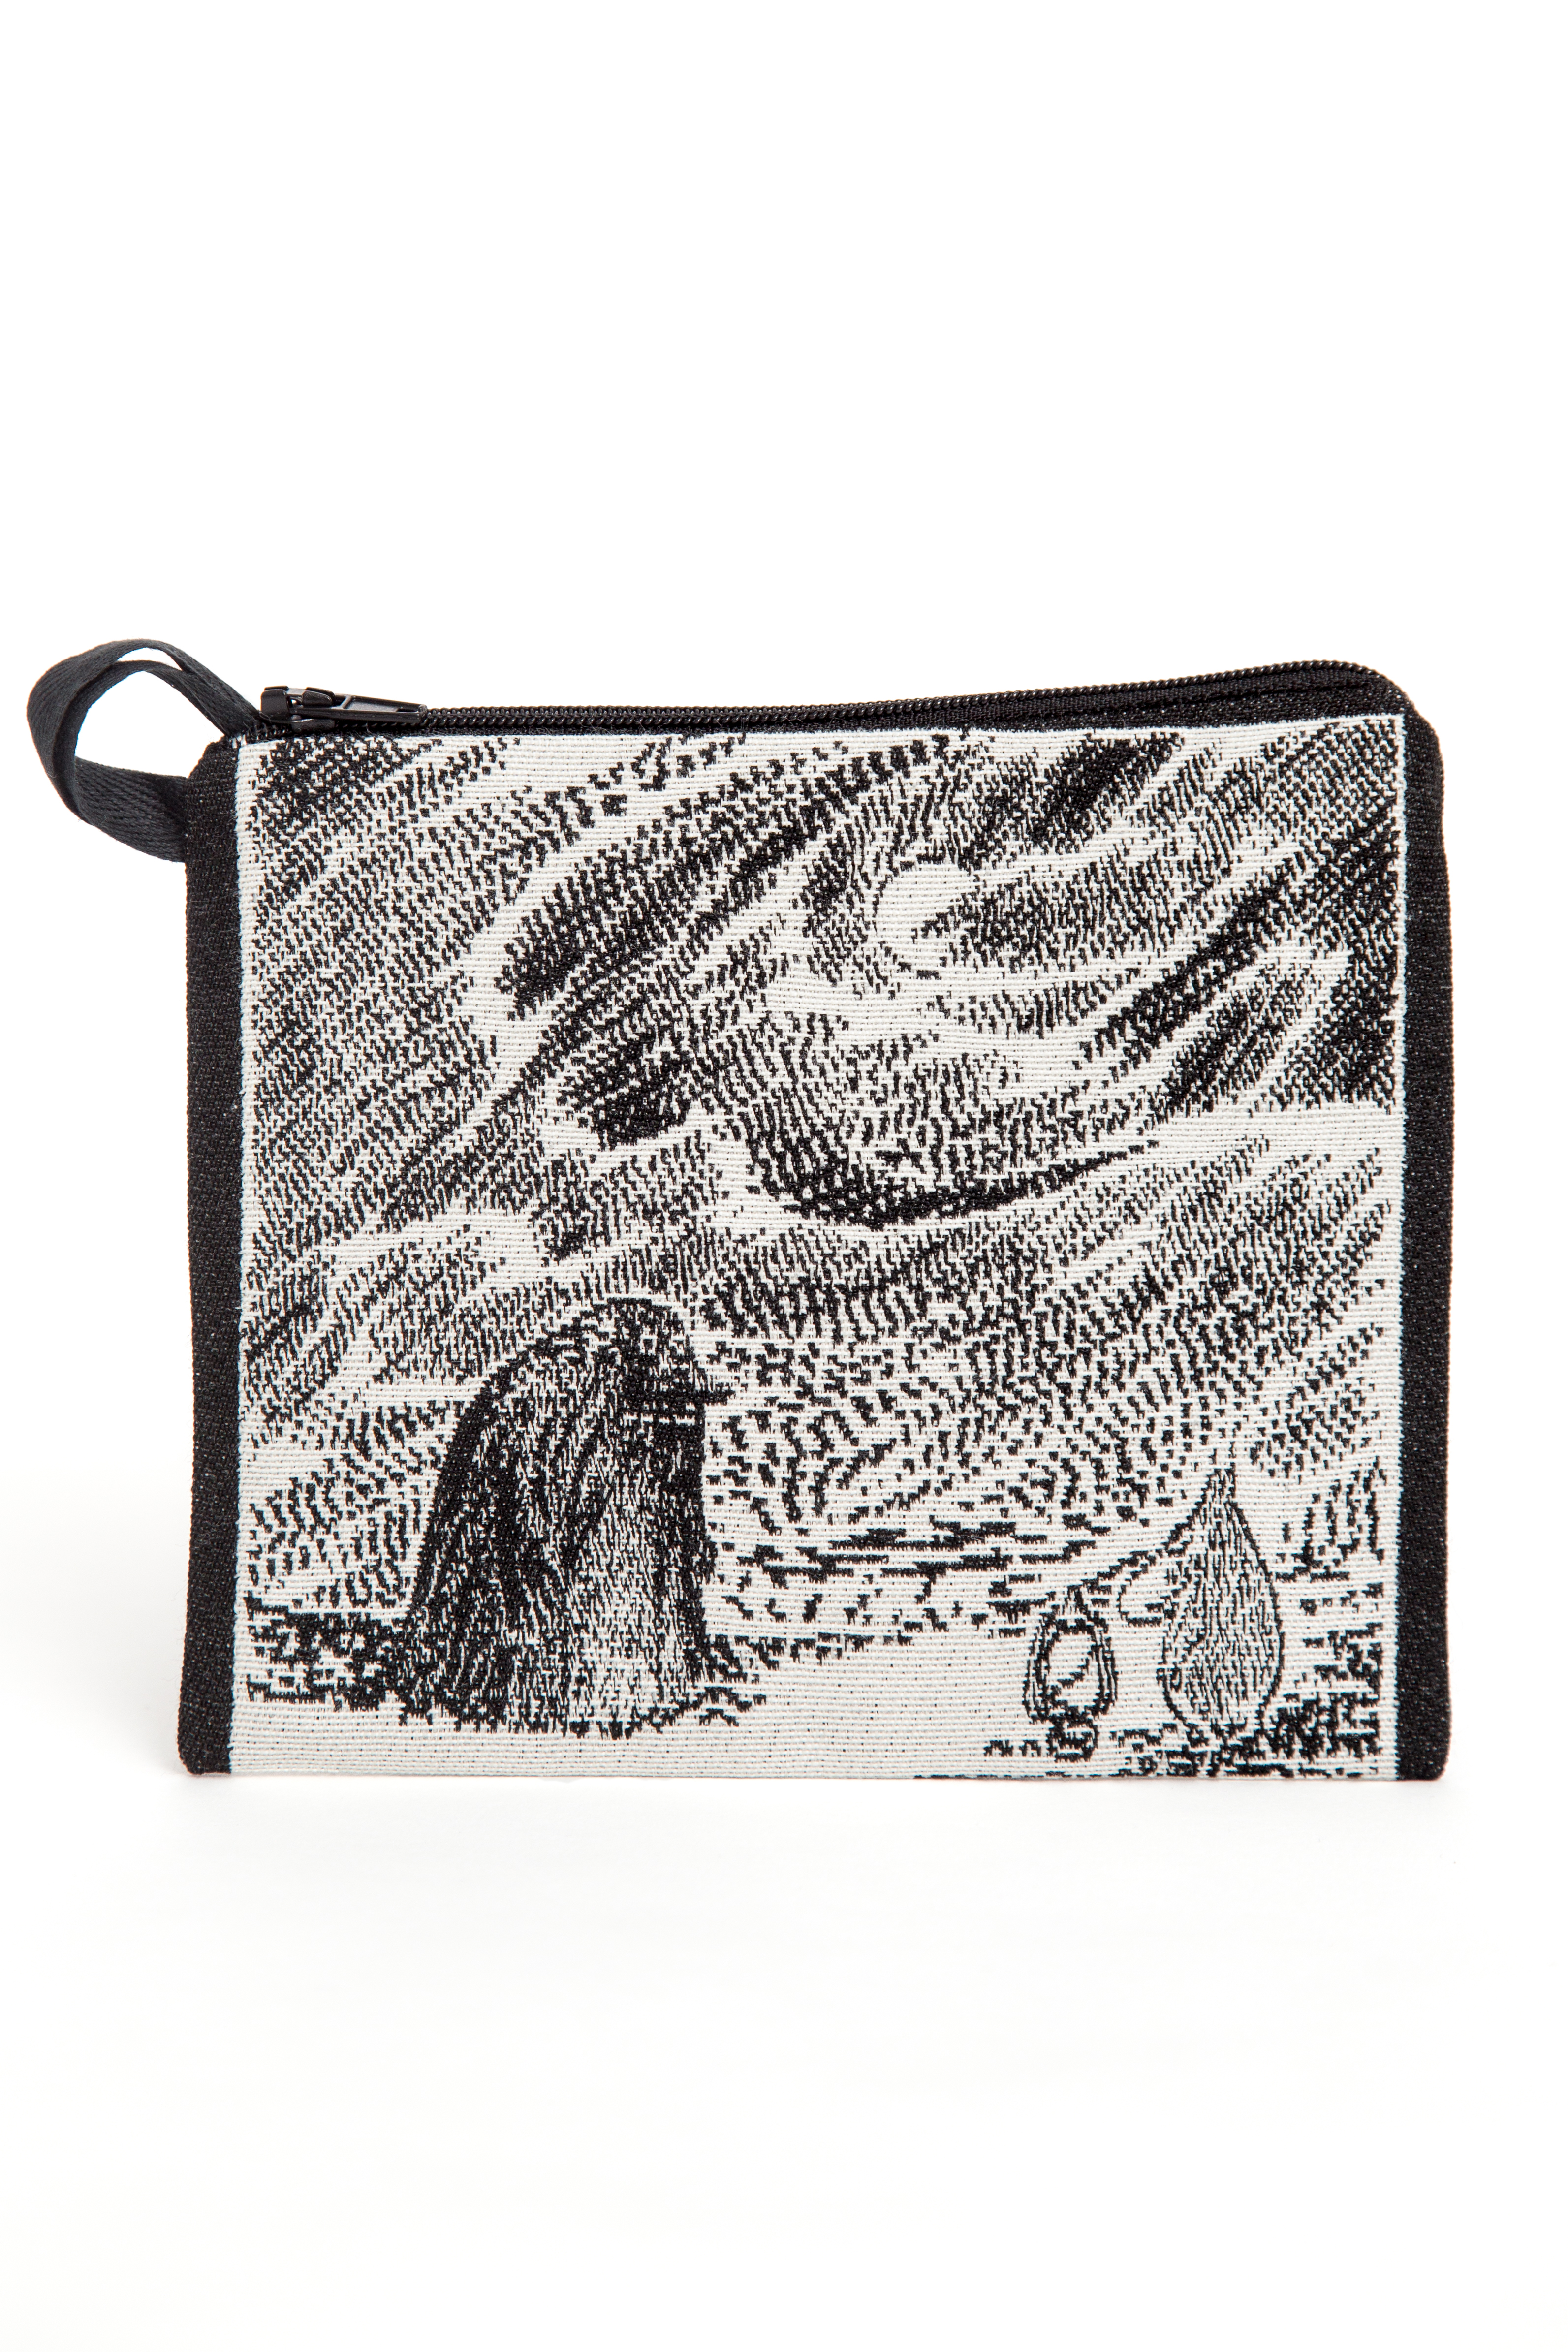 Aurora Decorari Gobelin Purse 15,5 x 13 cm The GROKE 103PRM